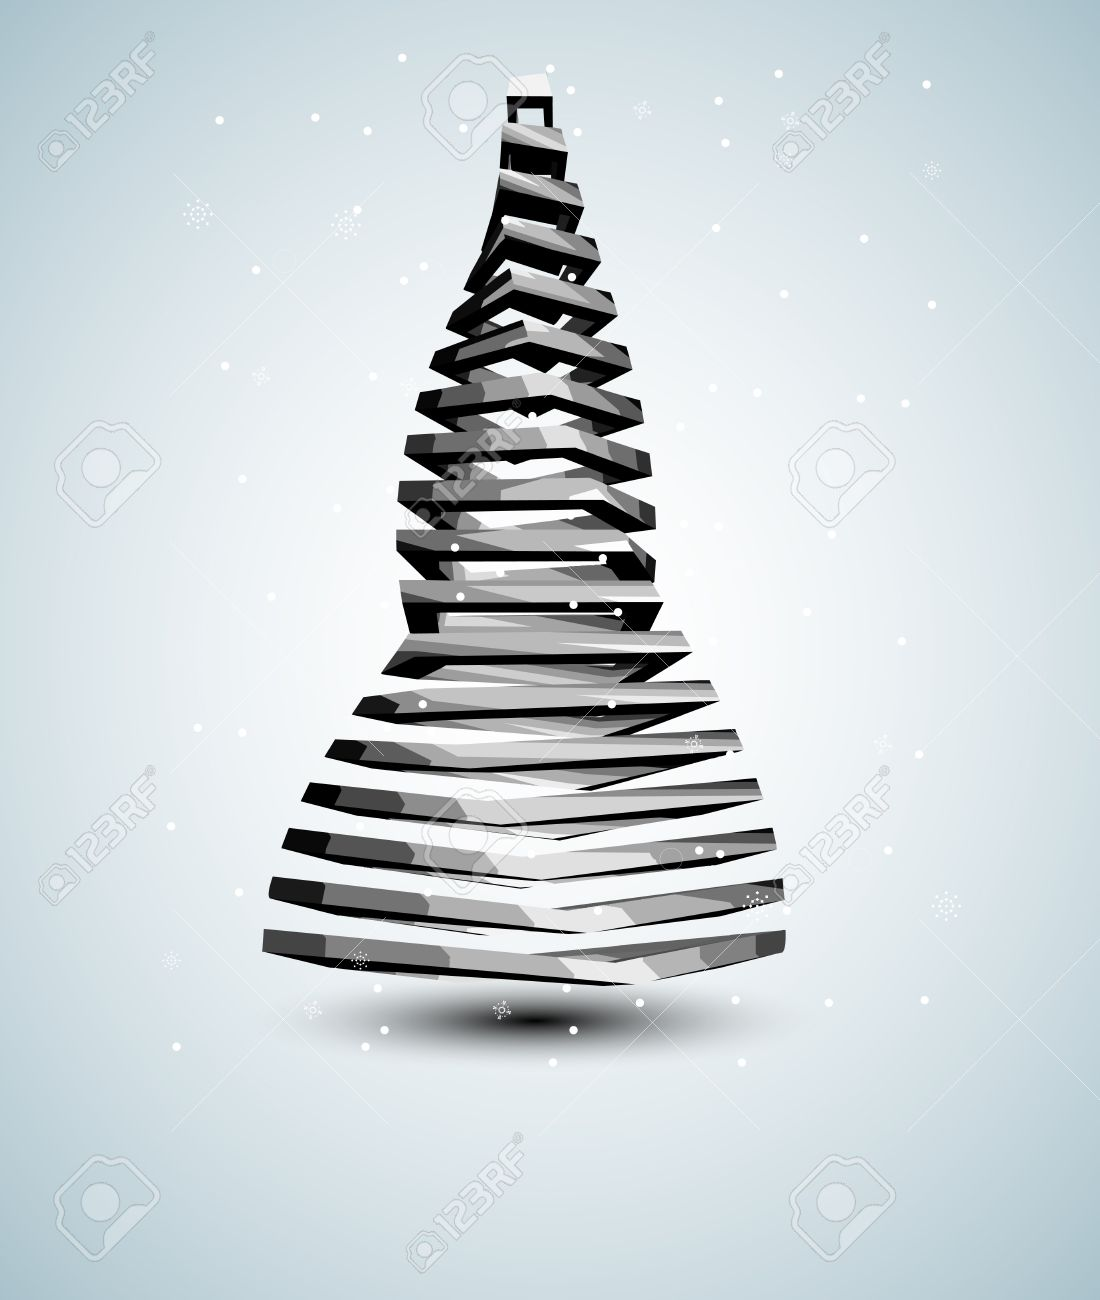 abstract iron christmas tree card stock vector 15756483 - Iron Christmas Tree